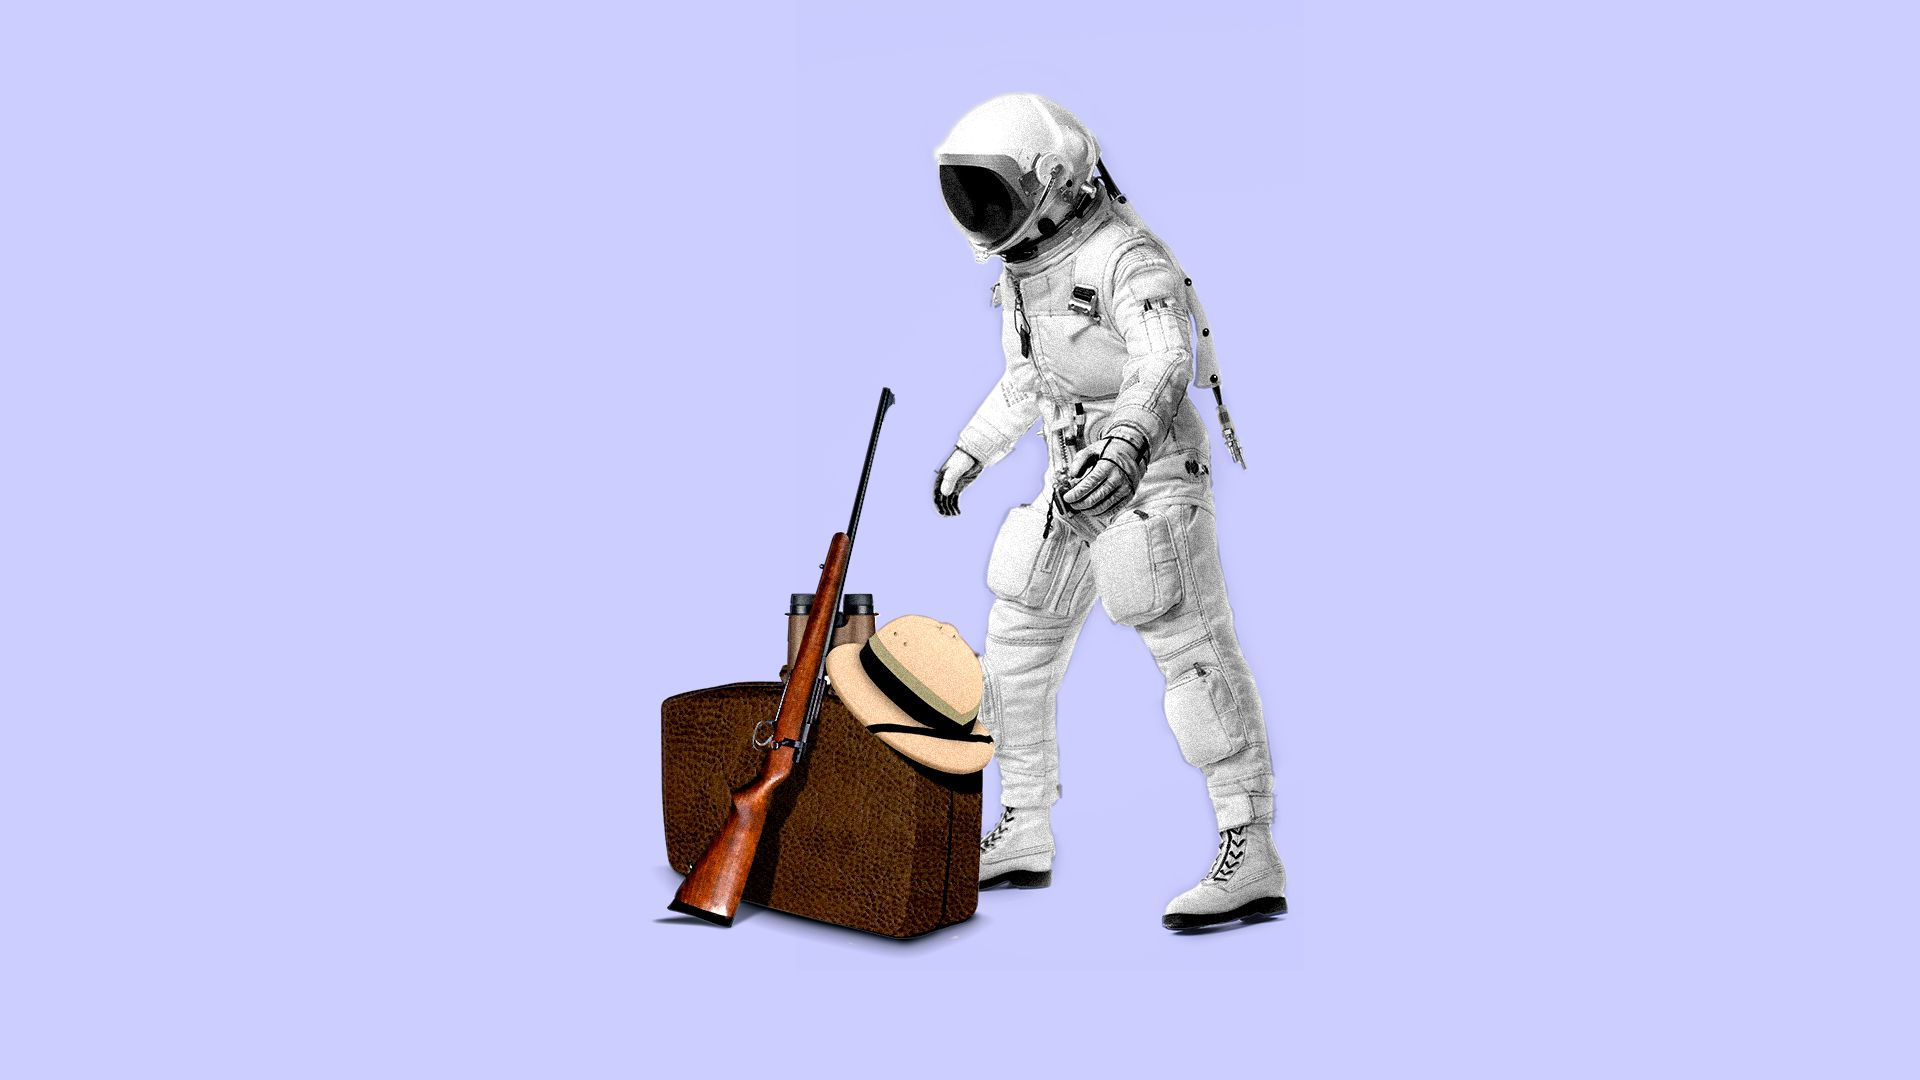 Illustration of an astronaut looking over a pith hat, binoculars and a rifle.